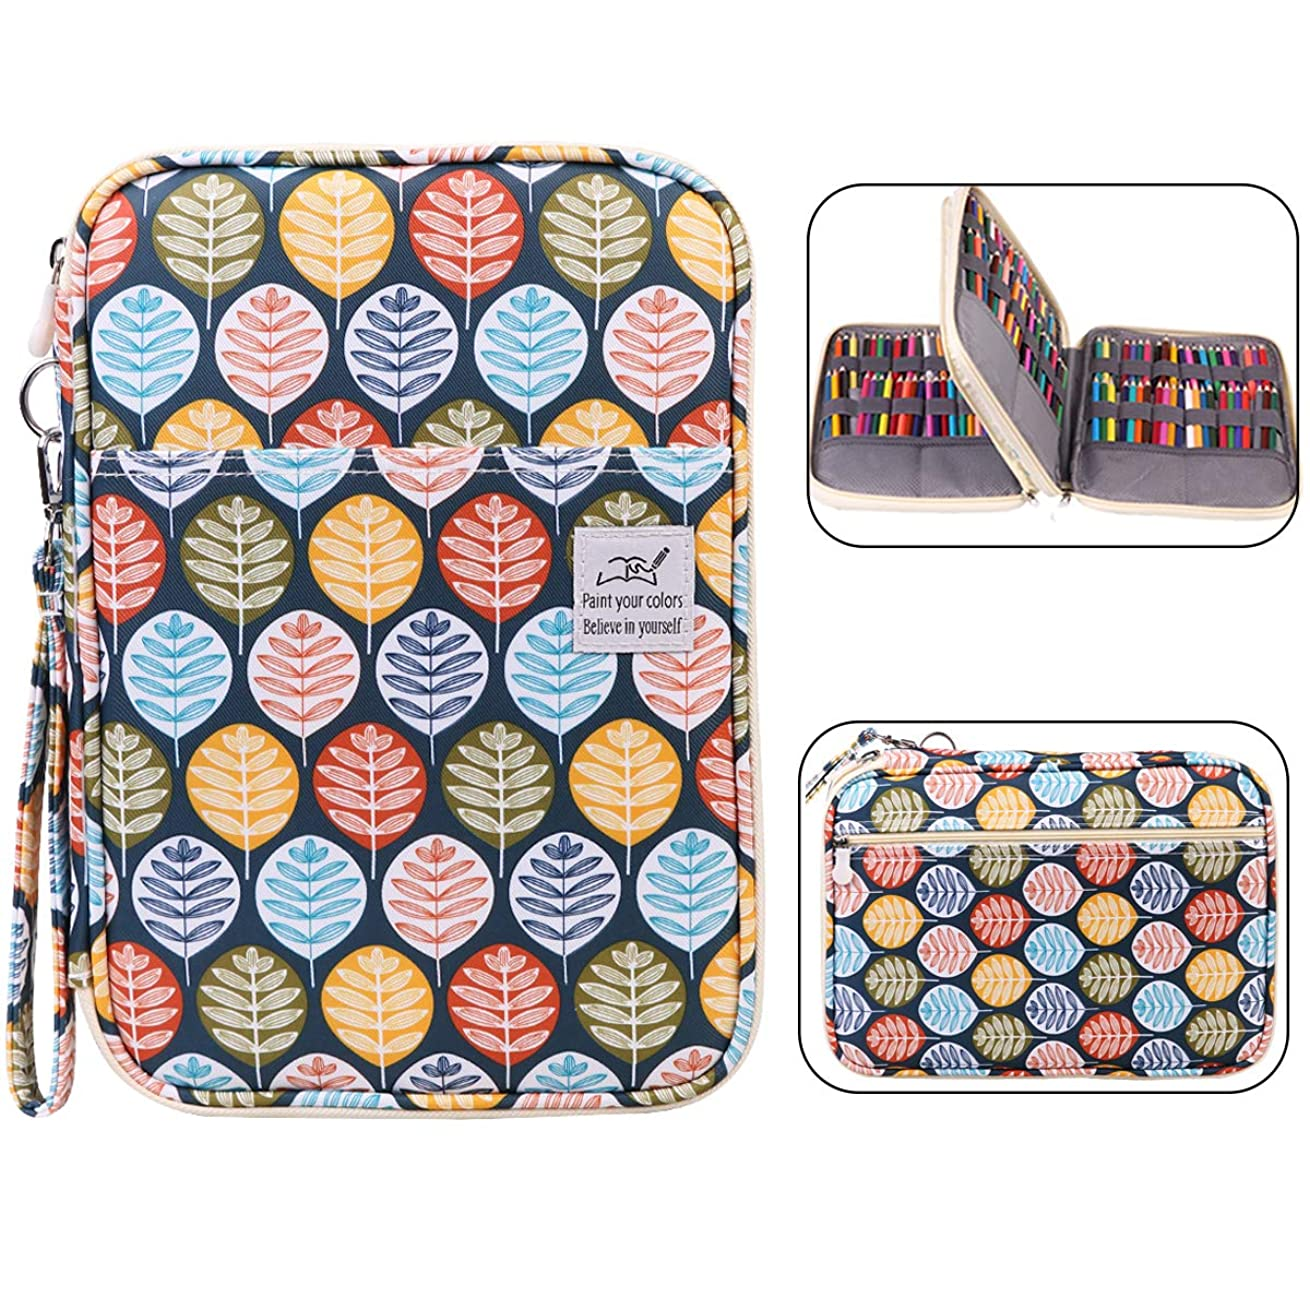 Max 192 Slots Colored Pencil Case Large Capacity Pencil Holder Multi-Layer Pen Organizer Bag for Watercolor Pencils & Markers& Gel Pens,Great Gift for Student Artist (Leaf)